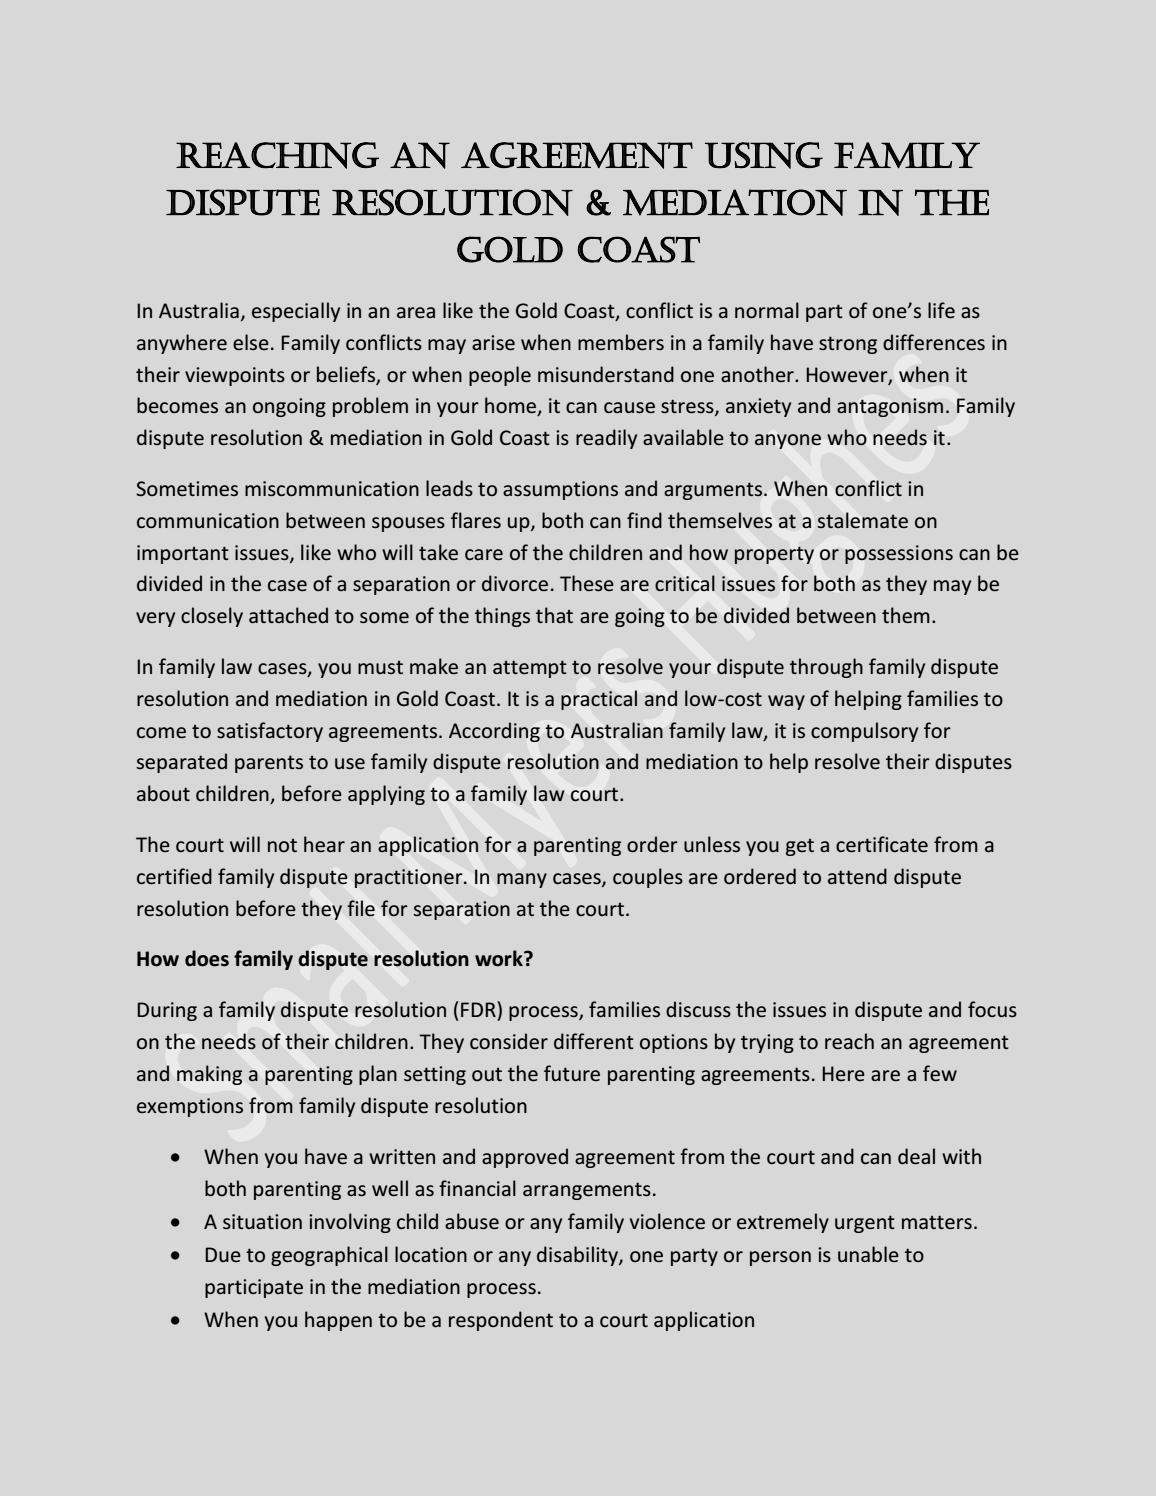 Family Dispute Resolution & Mediation Gold Coast by SMH